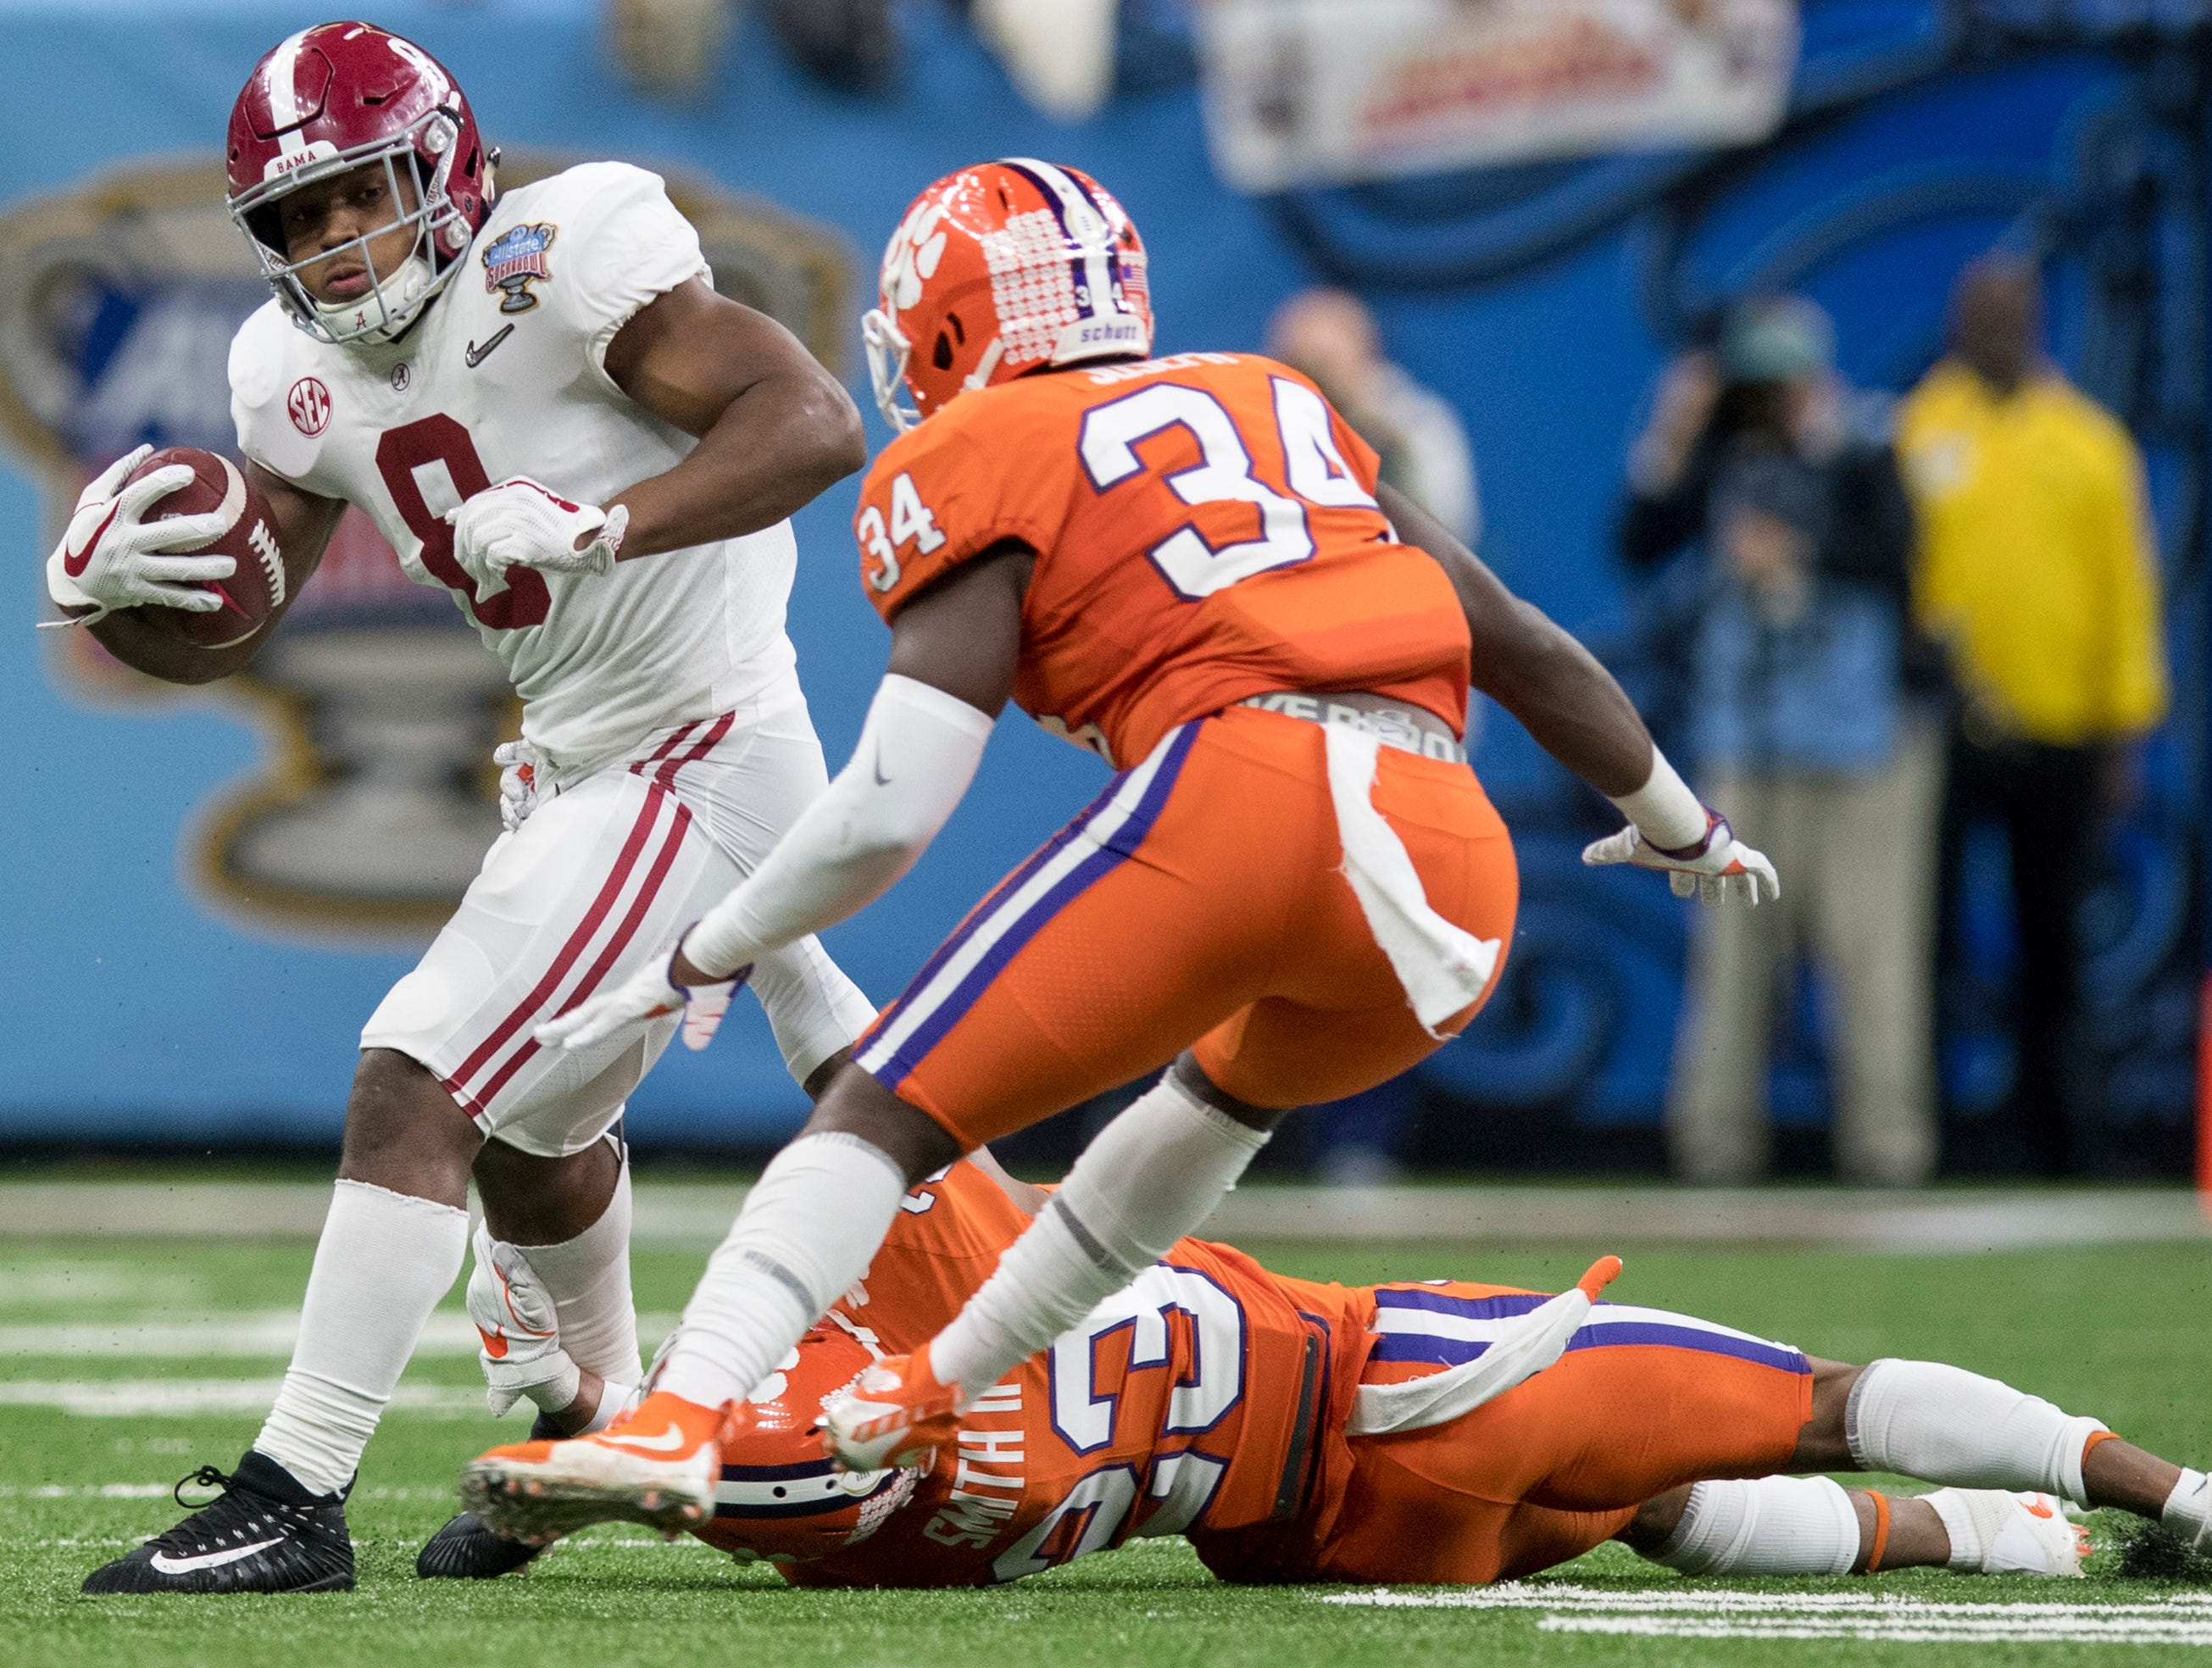 Alabama running back Josh Jacobs (8) carries against Clemson in first half action in the Sugar Bowl at the Superdome in New Orleans, La. on Monday January 1, 2018.